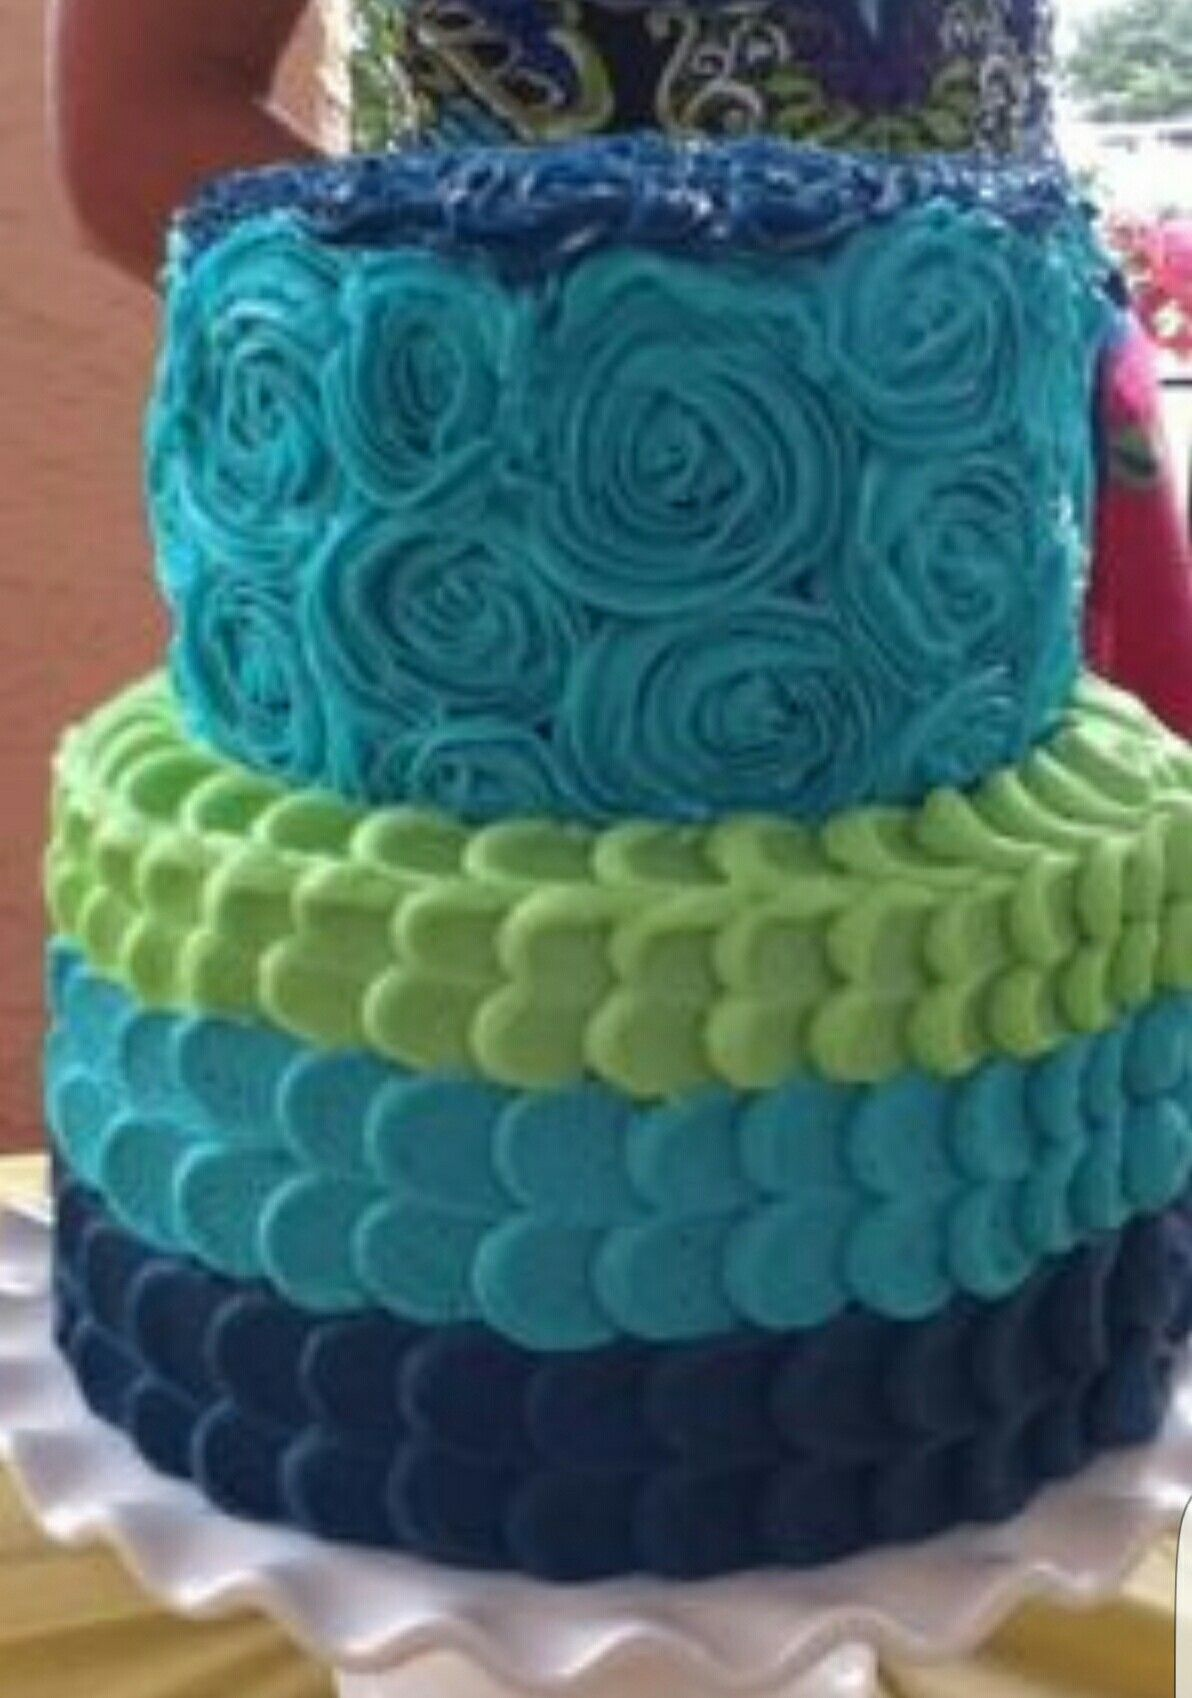 Pin by Shelby Lyons on wedding | Pinterest | Cake baking and Cake